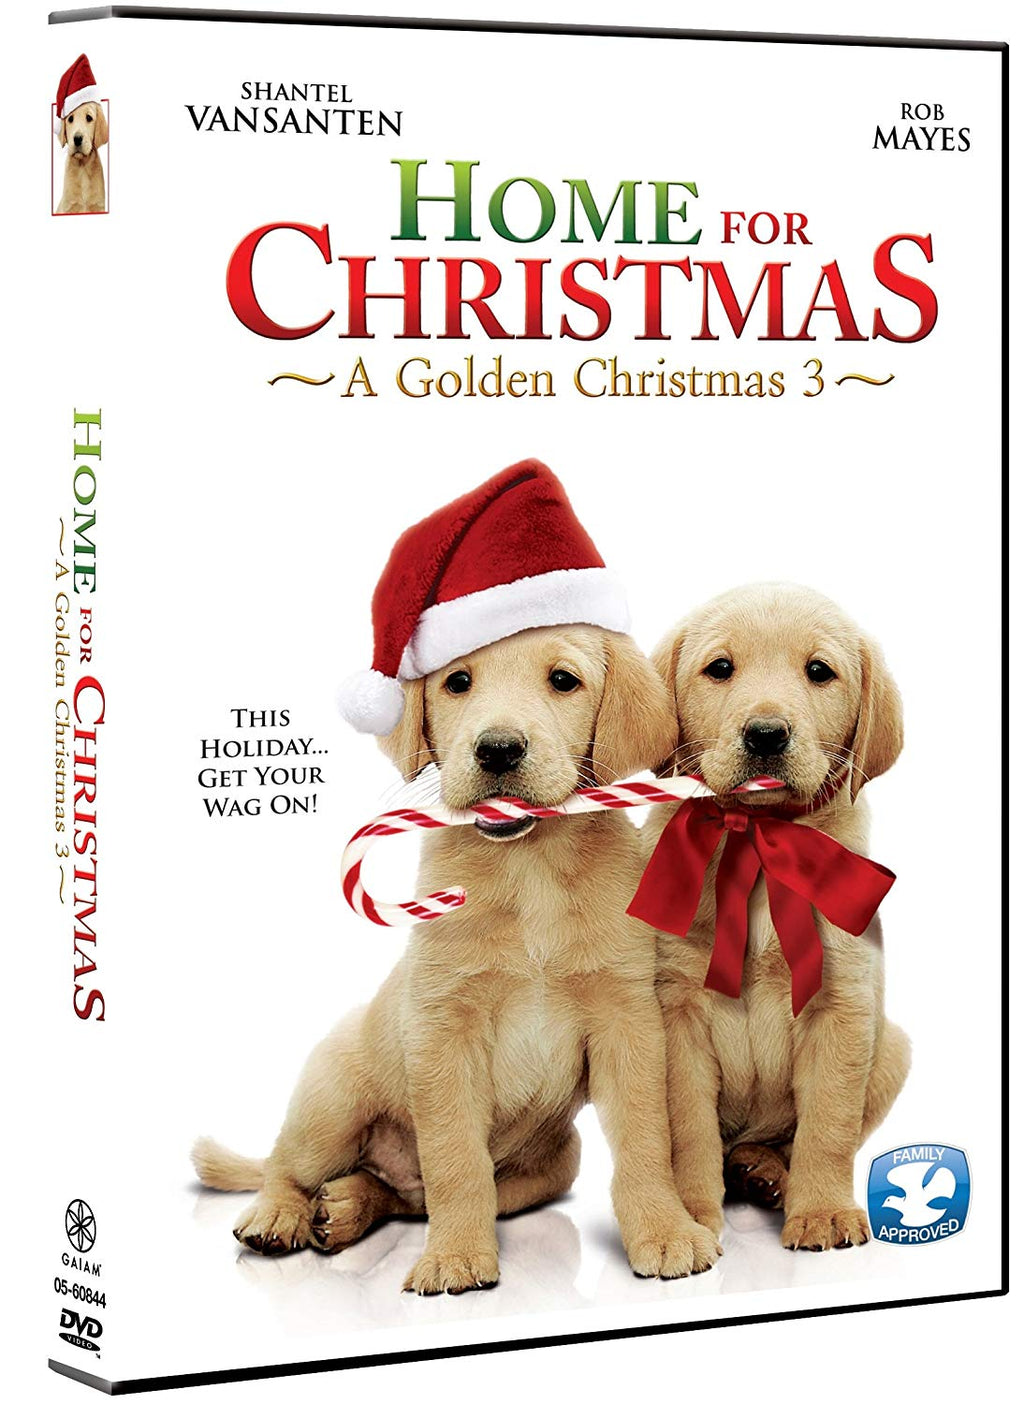 Home for Christmas: A Golden Christmas 3 DVD